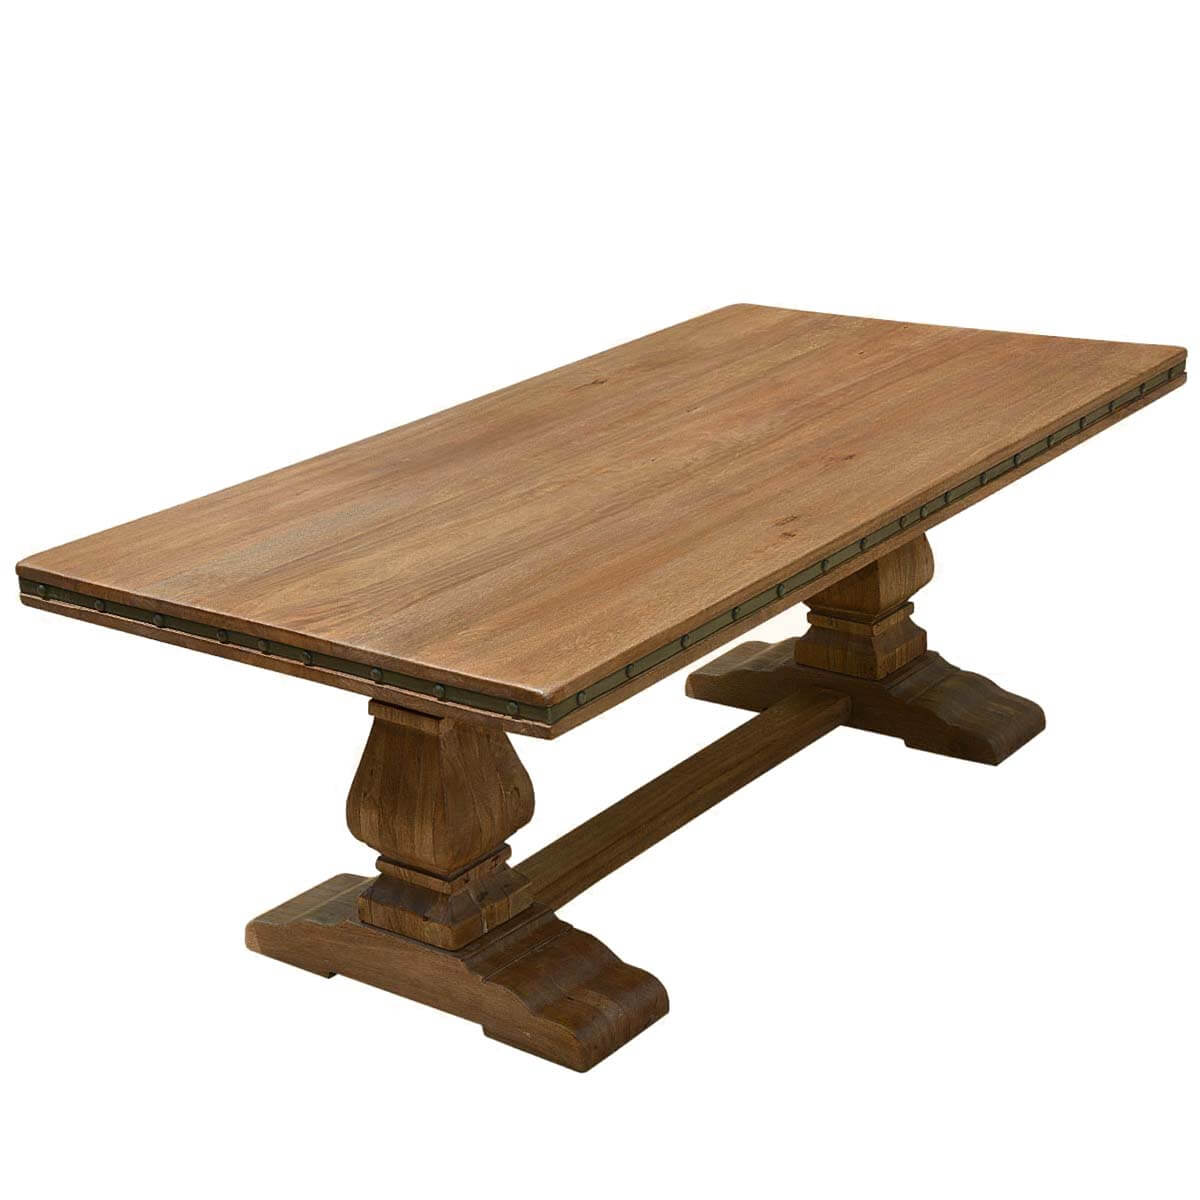 Rustic solid wood trestle pedestal base harvest dining table Best wood for dining table